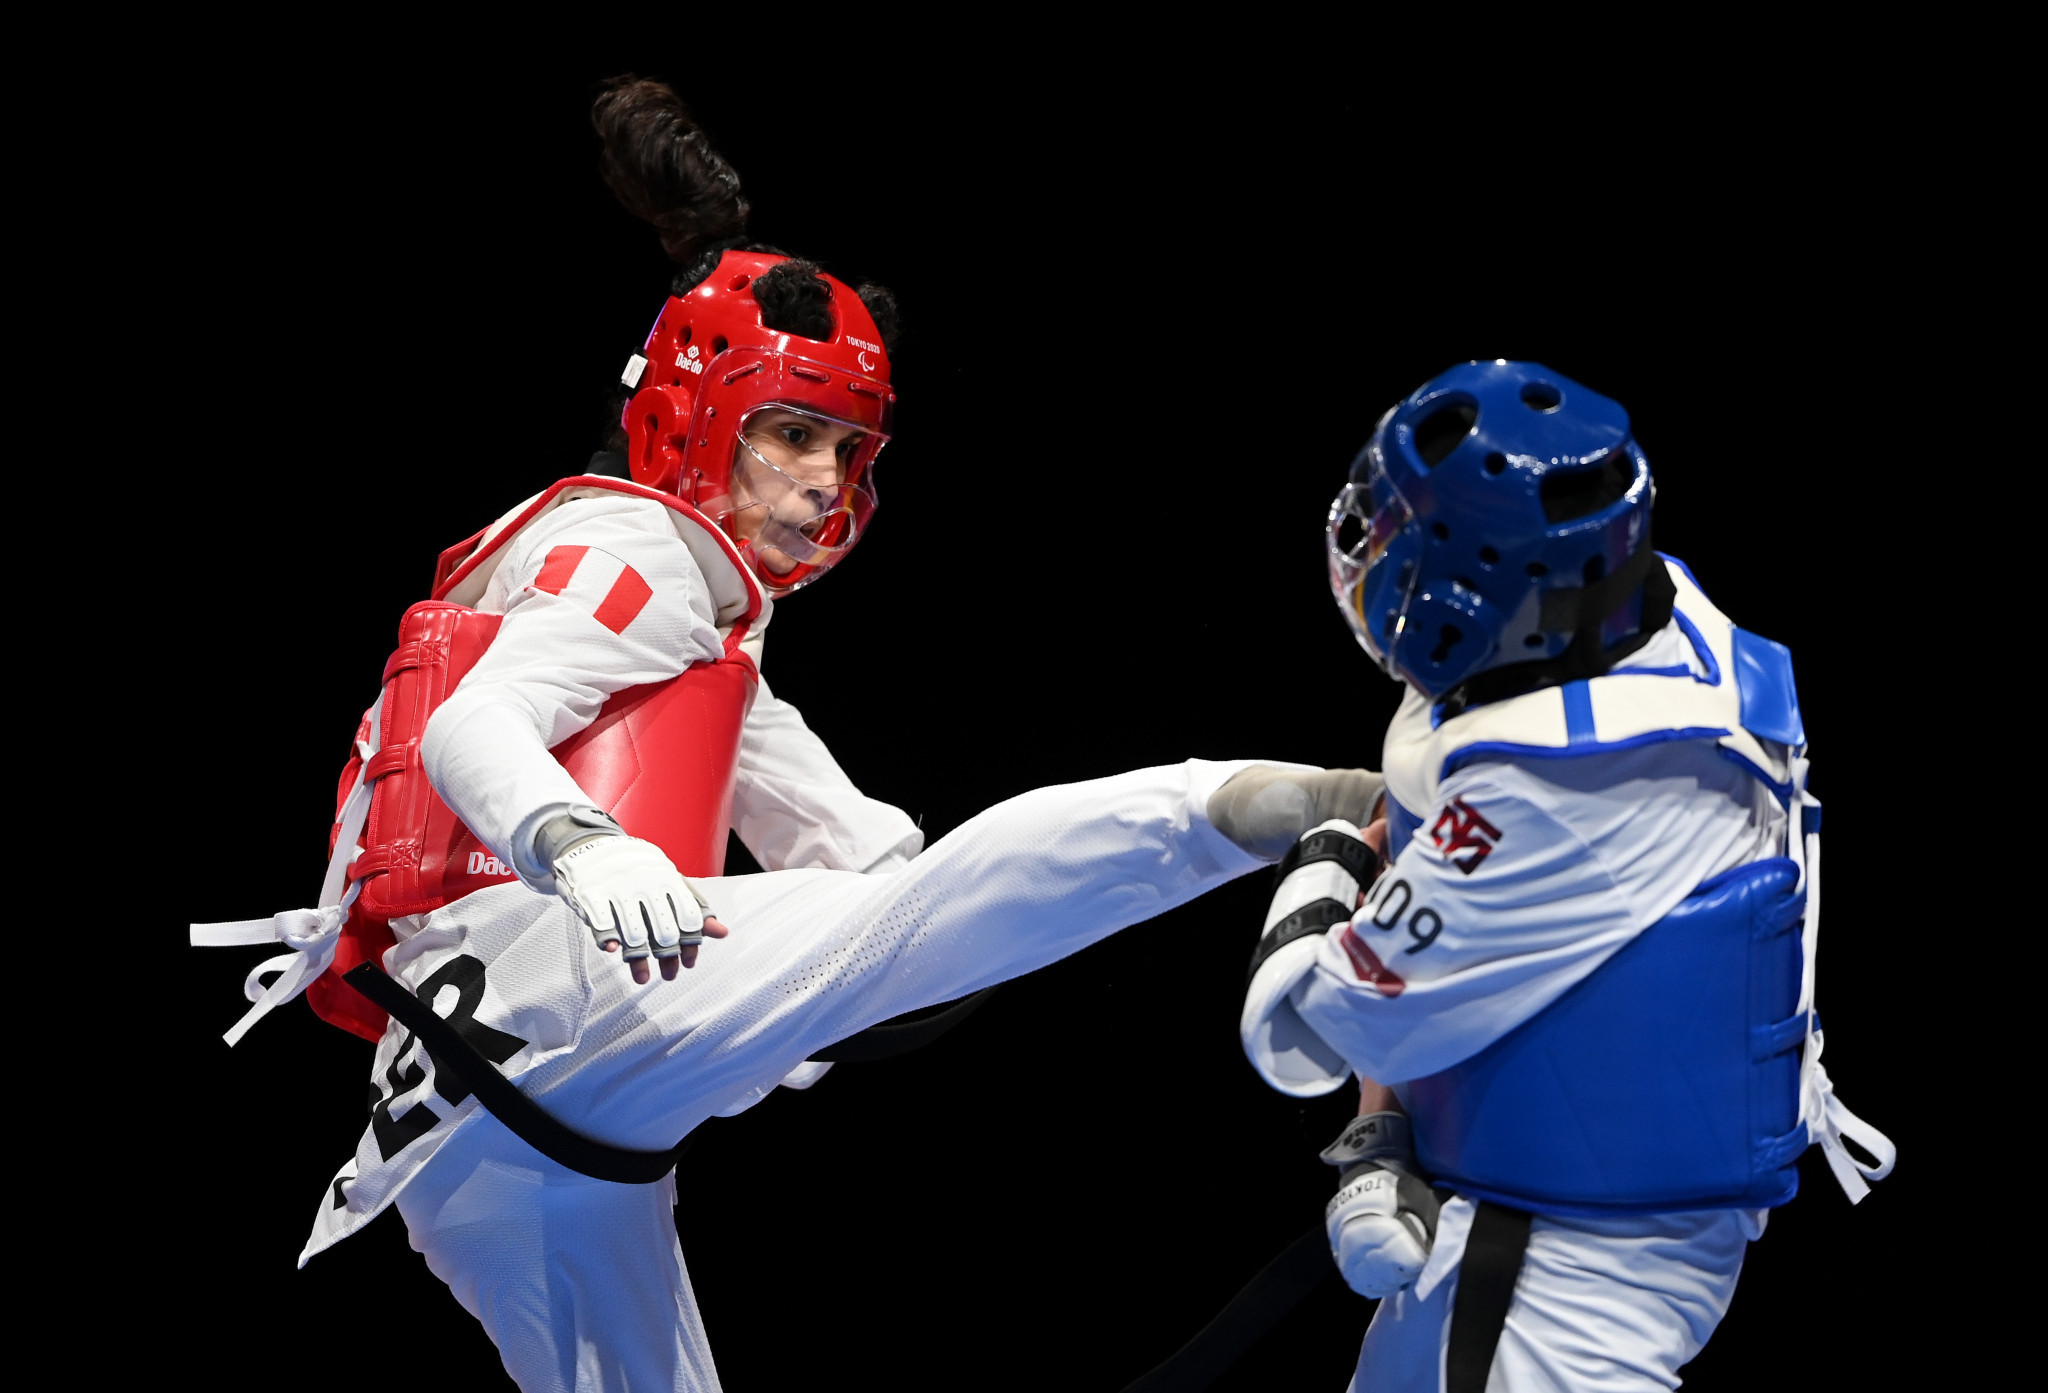 Leonor Espinoza Carranza made history by becoming the first Paralympic champion in taekwondo ©Getty Images